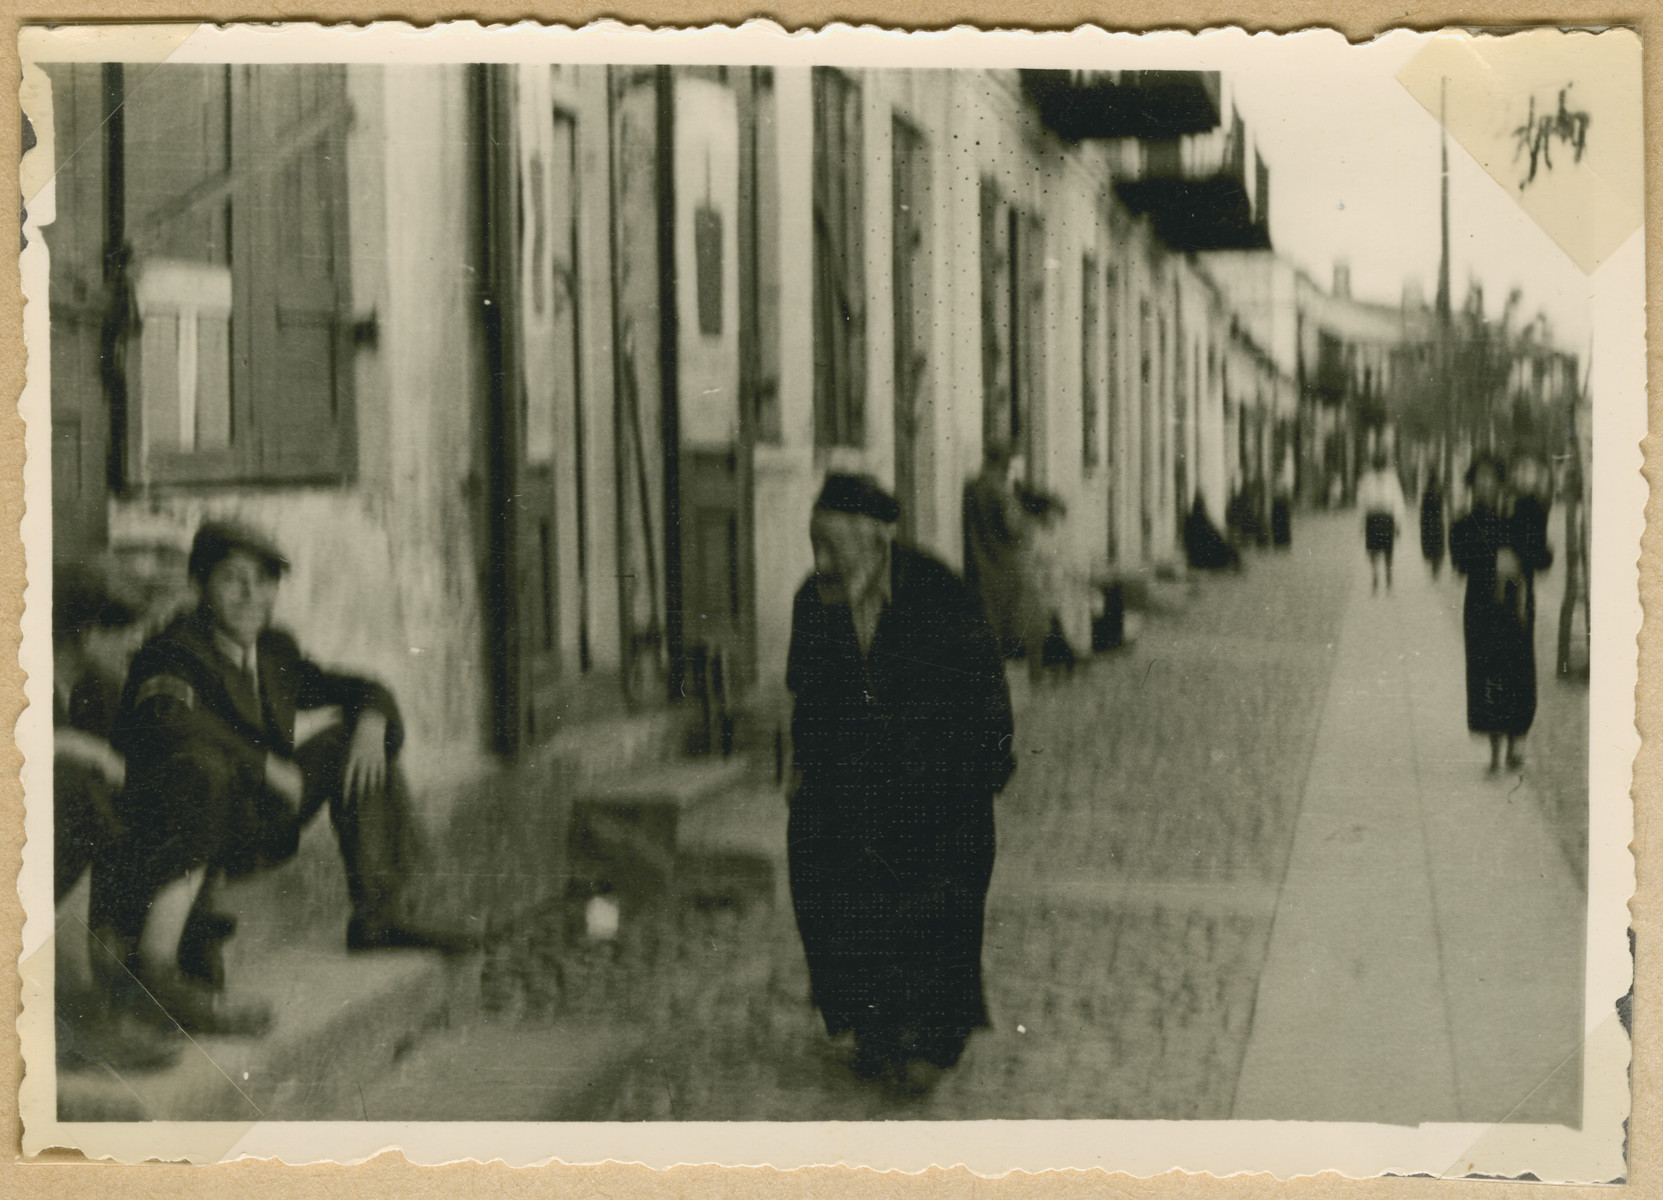 Jews sit on doorsteps and walk down a street of what probably is the Deblin-Irena ghetto.